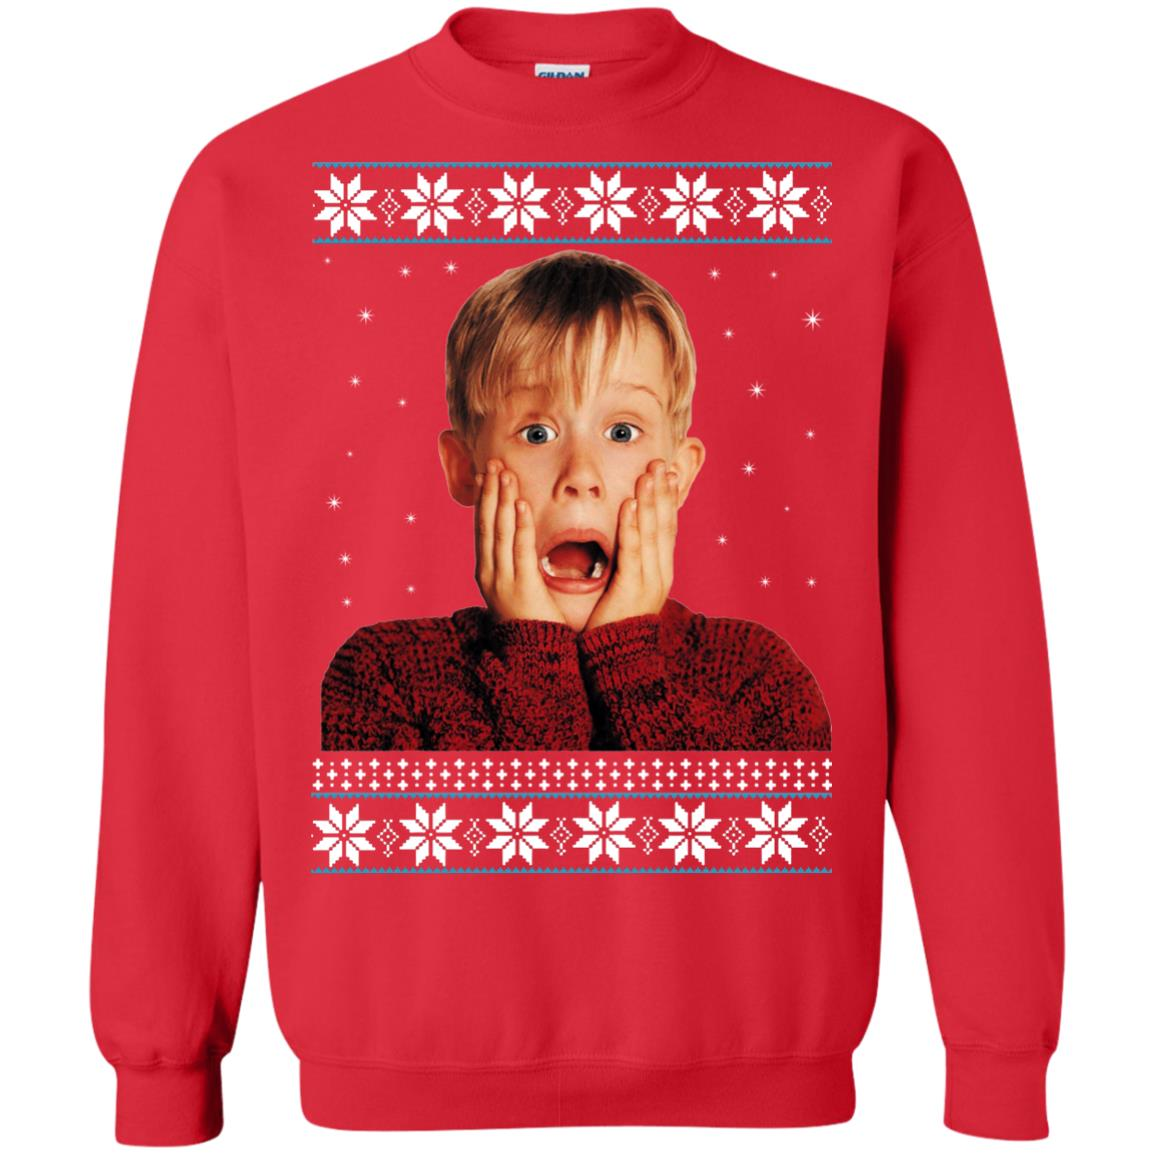 image 6278 - Home Alone: Kevin McCallister Sweatshirt, Hoodie, Long Sleeve